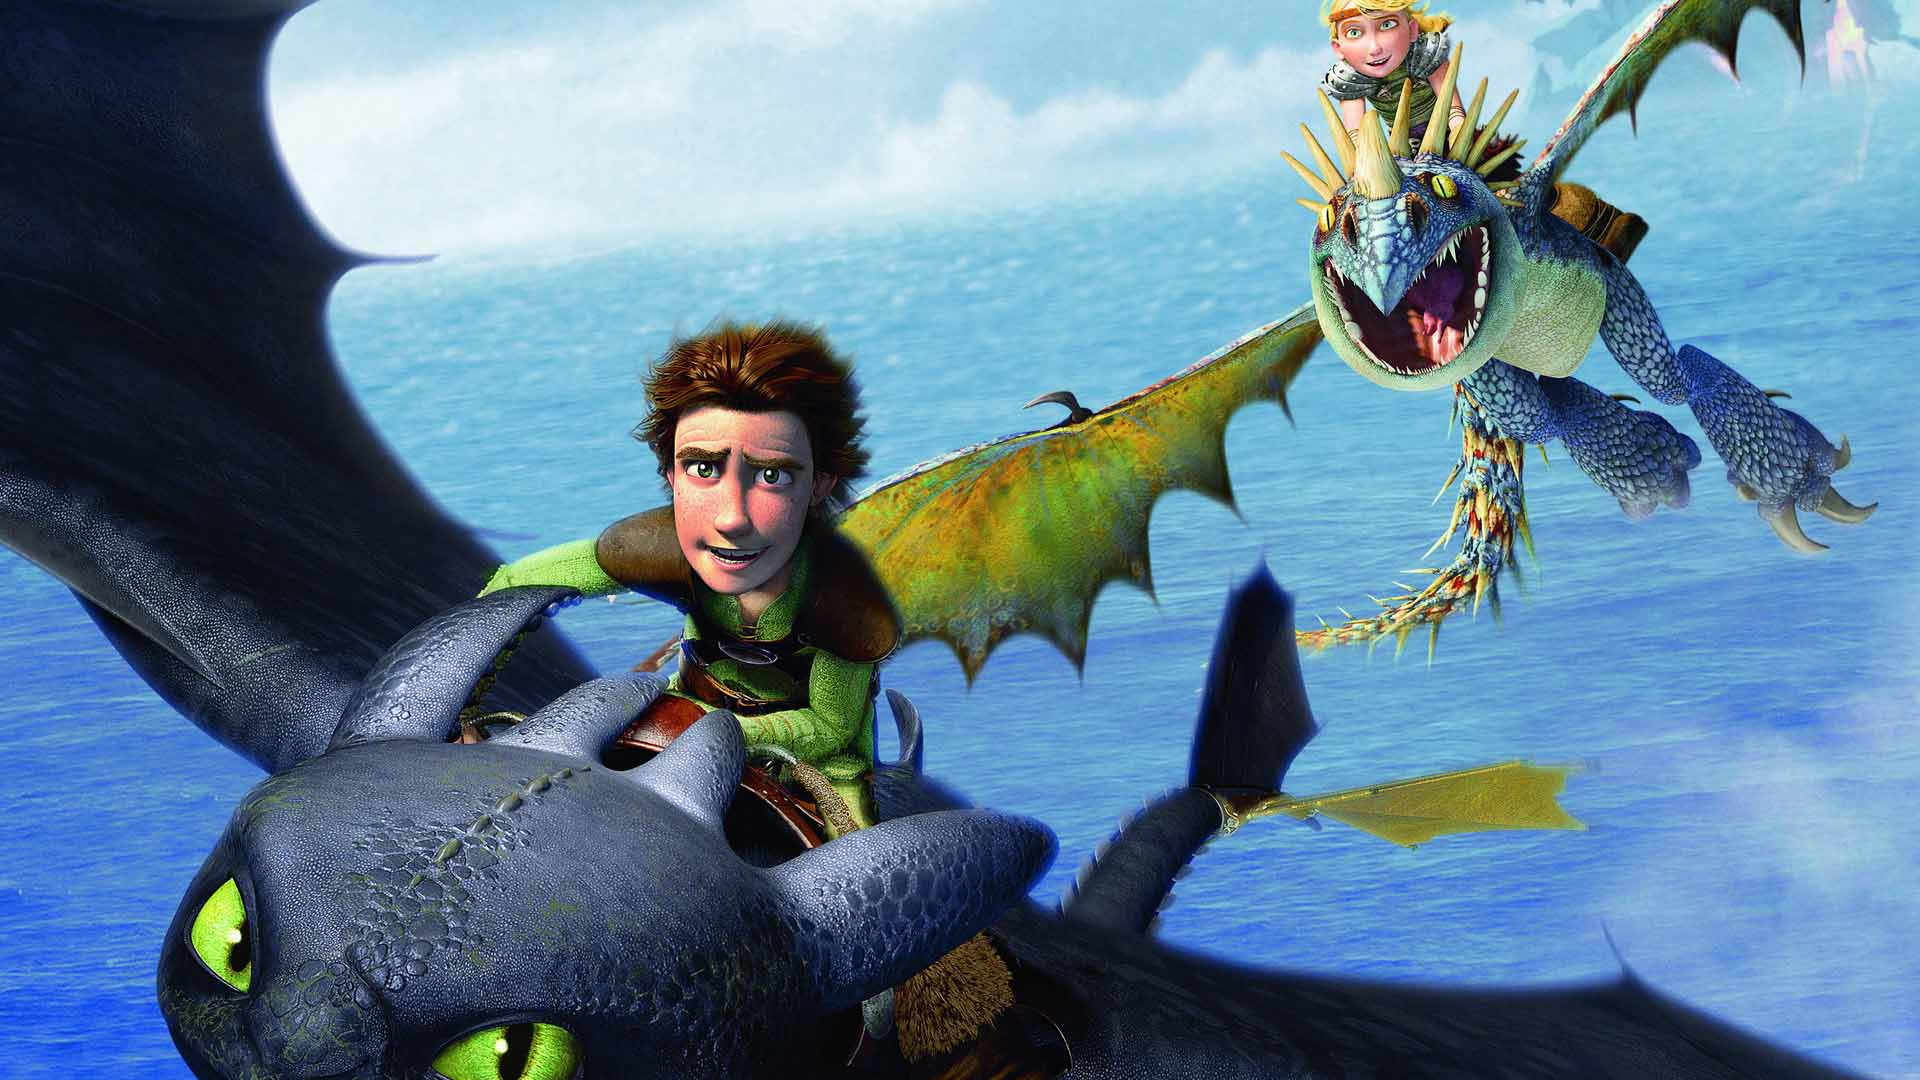 Watch the new trailer for how to train your dragon 2 film a new trailer has been released for animated film how to train your dragon 2 the video shows duo hiccup and toothless as they are about to go in pursuit of ccuart Image collections